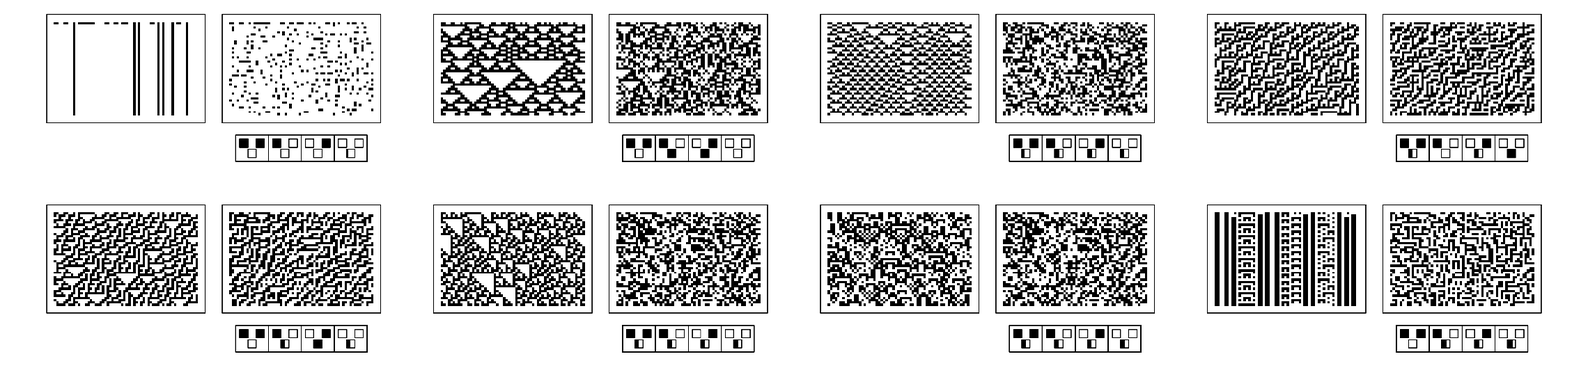 A comparison between data generated by ordinary cellular automata and probabilistic cellular automata